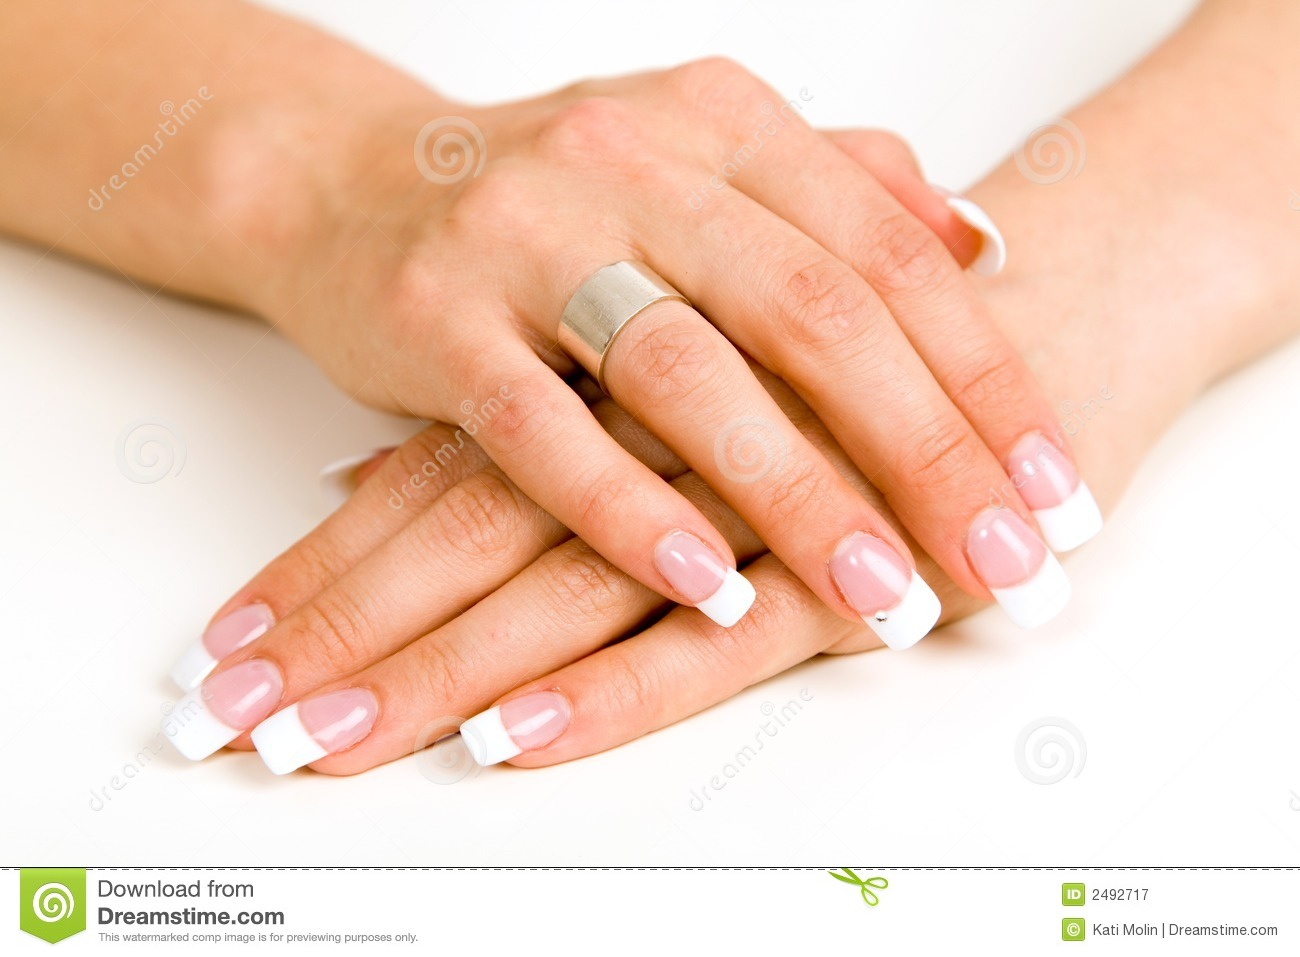 Beautiful Nails Royalty Free Stock Photography - Image: 2492717